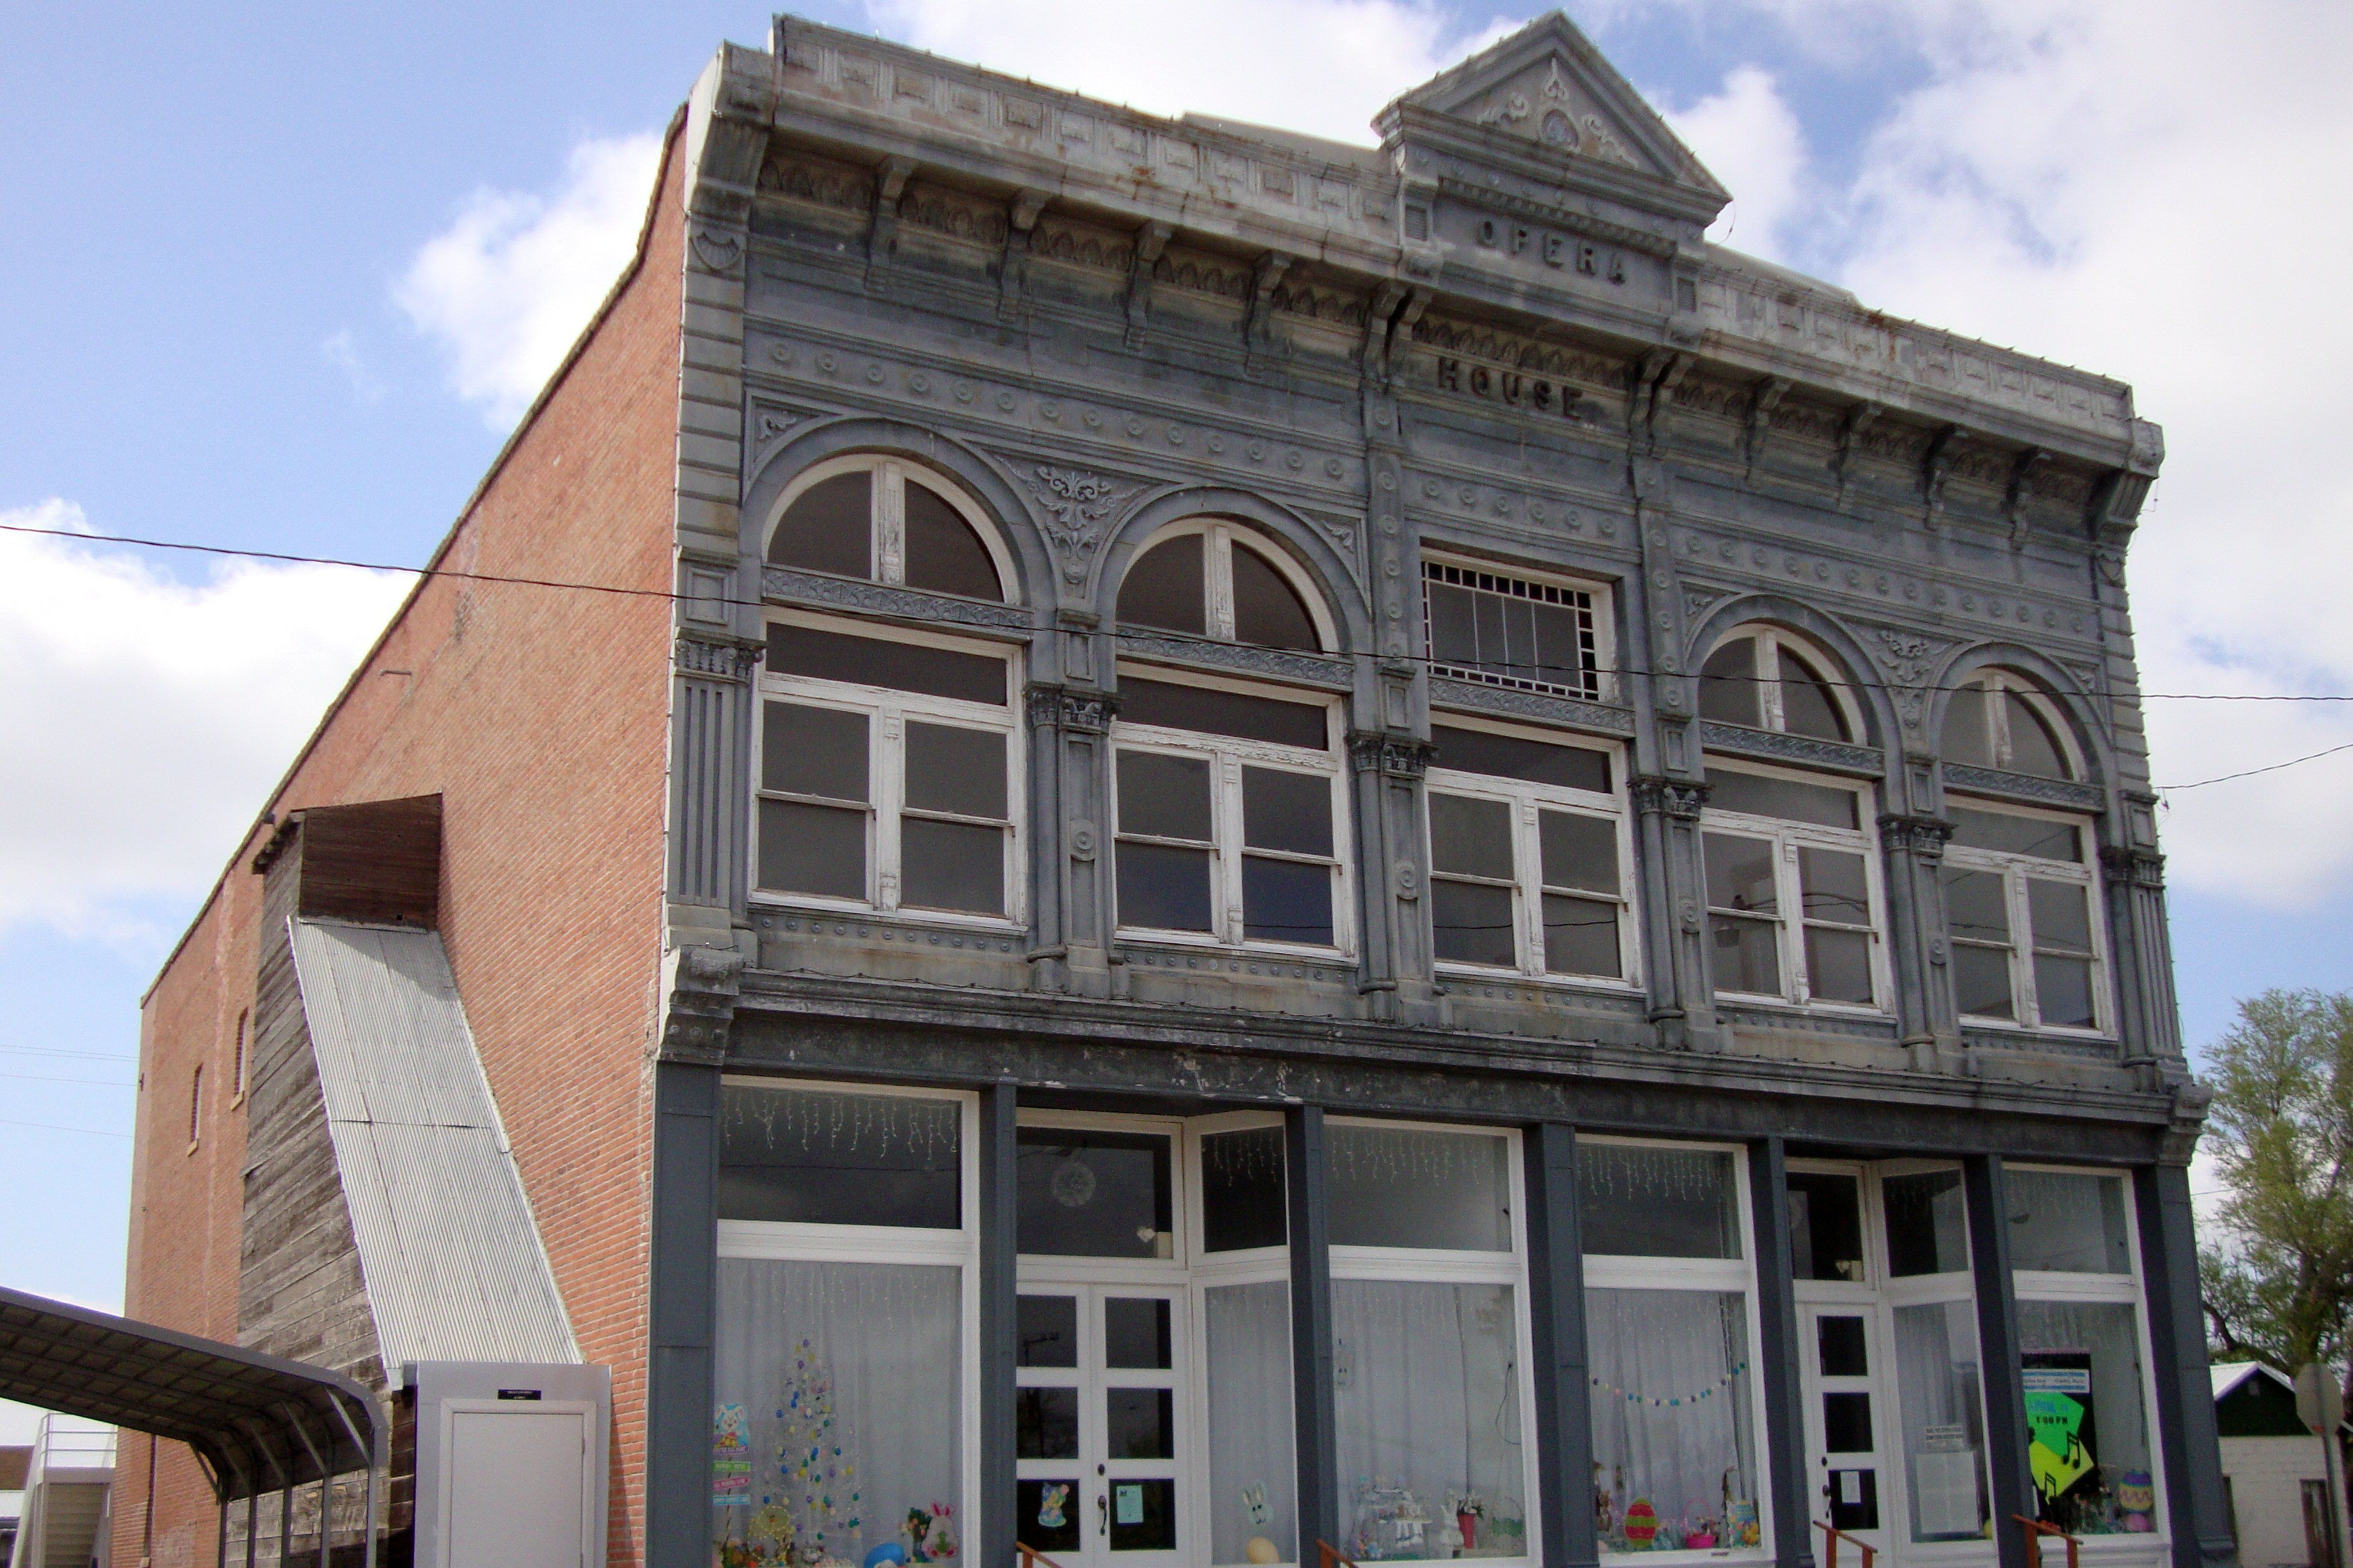 Commercial building, brick with cast iron front, large windows on facade